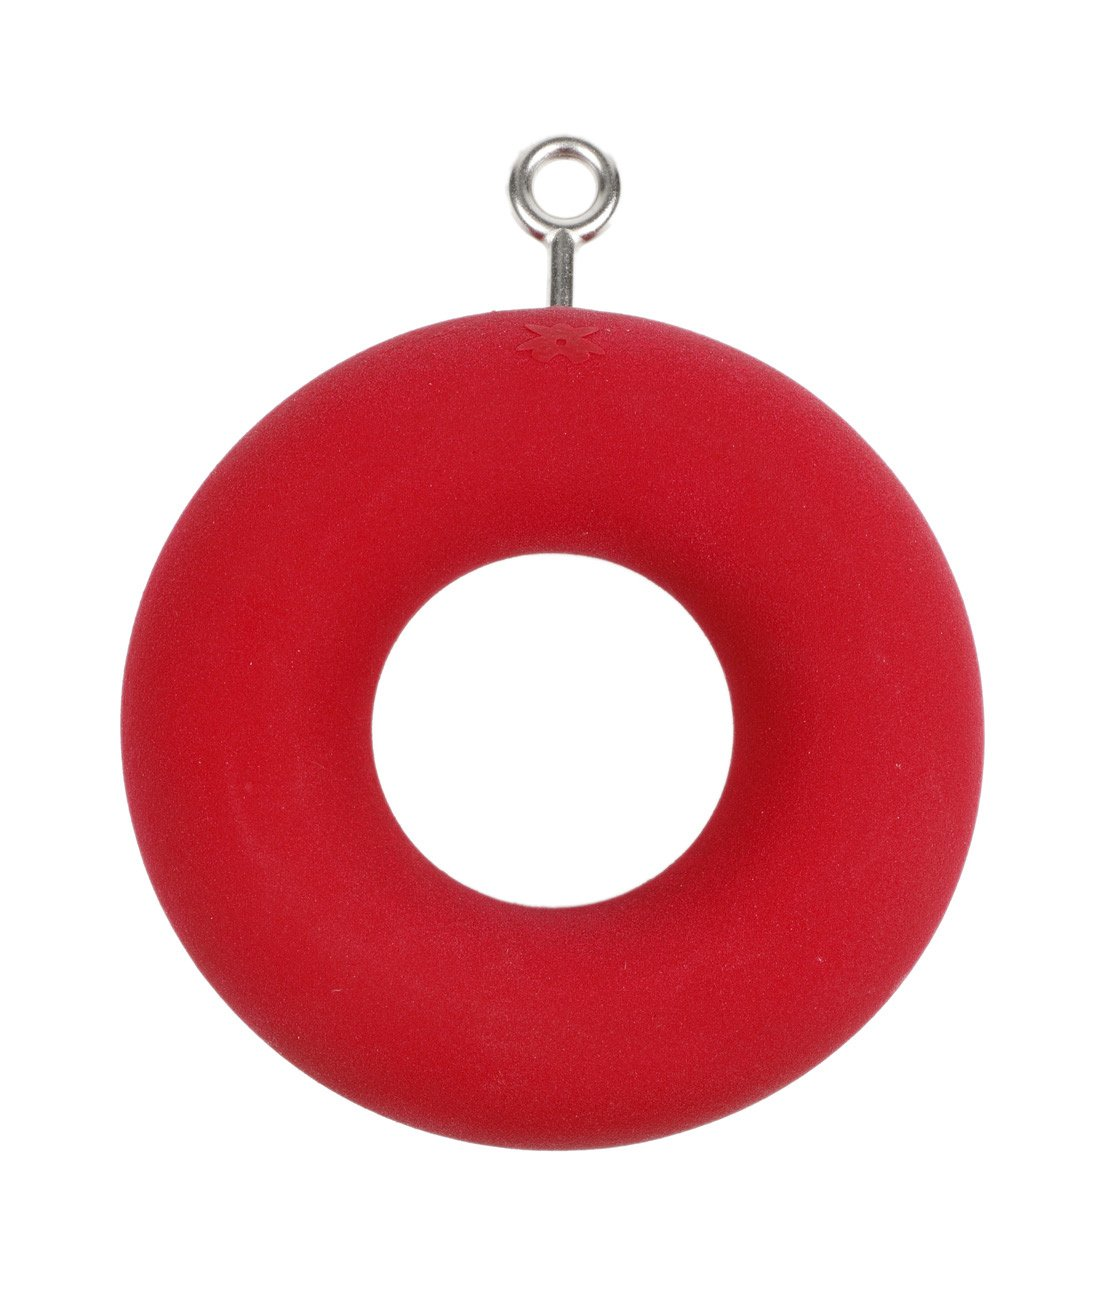 XXL Donut Ring (3 INCH Diameter : ONE UNIT)| Climbing Holds | Red